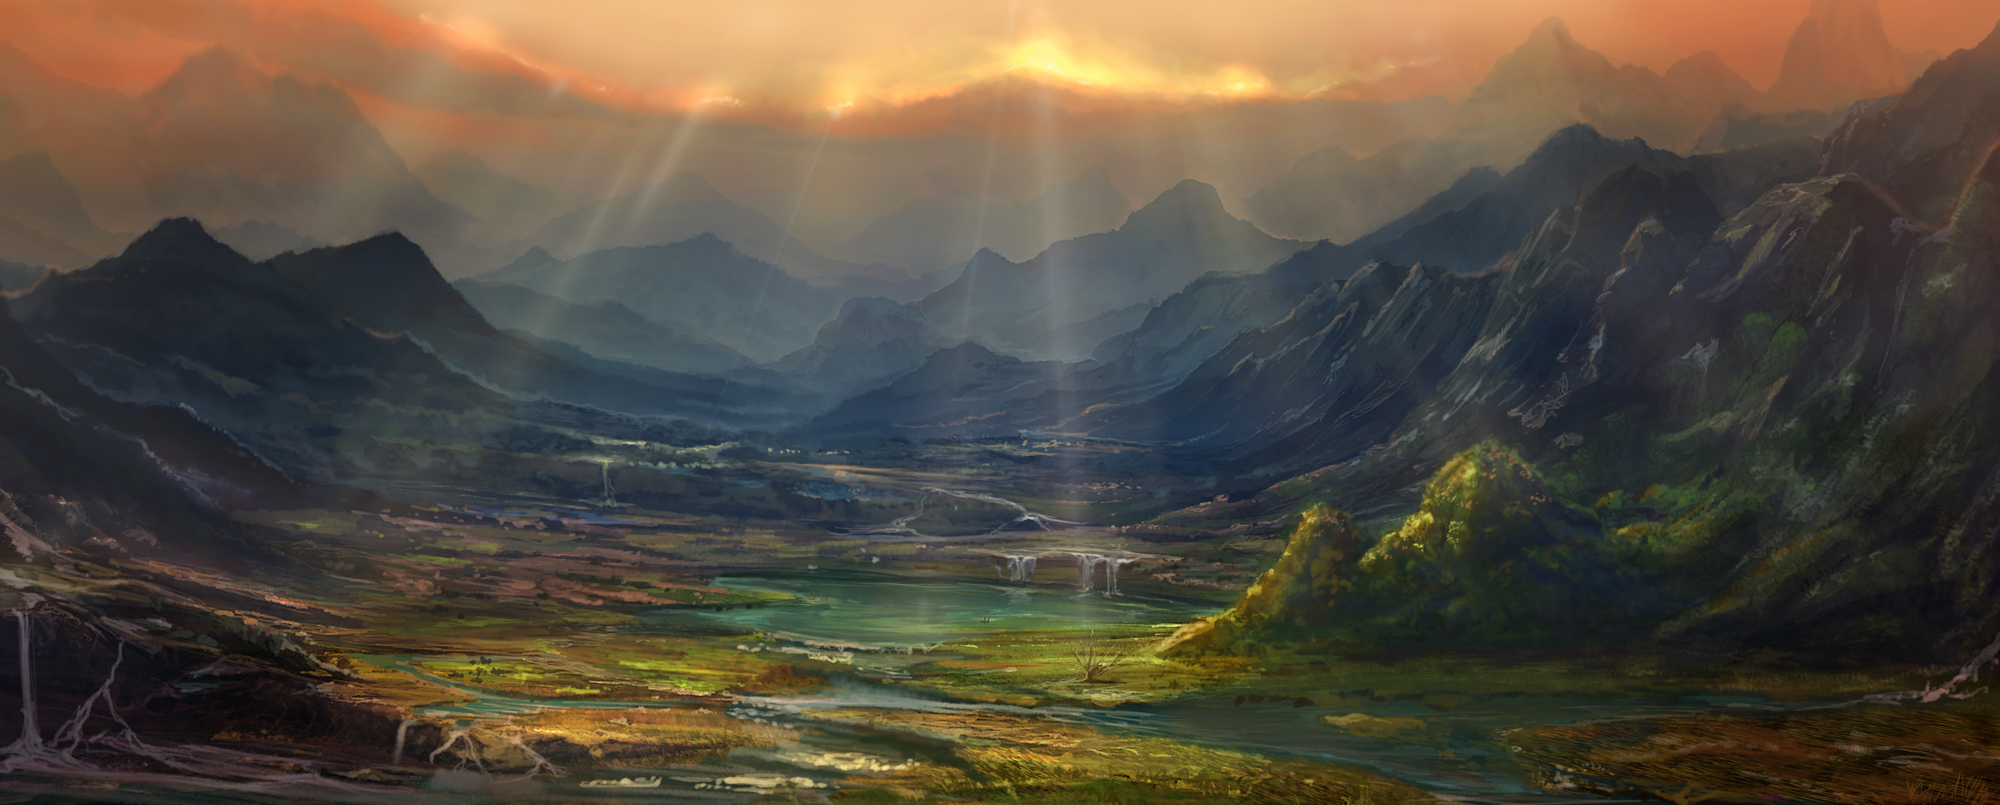 Image Landscape Jpg War Of Legends Wiki Fandom